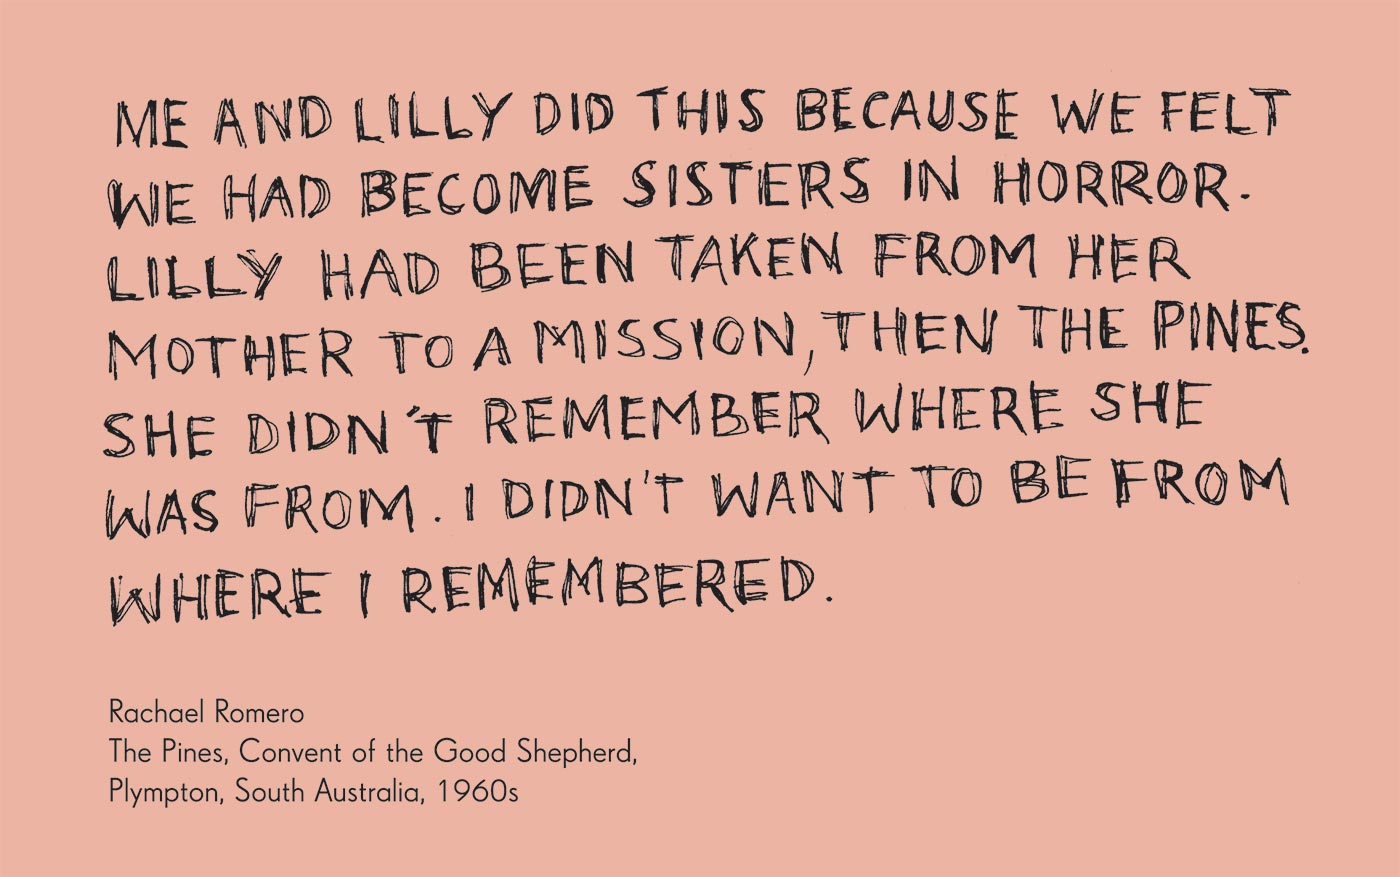 Exhibition graphic panel that reads: 'Me and Lilly did this because we felt we had become sisters in horror. Lilly had been taken from her mother to a mission, then The Pines. She didn't remember where she was from. I didn't want to be from where I remembered' attributed to 'Rachael Romero, The Pines, Convent of the Good Shepherd, Plympton, South Australia, 1960s'. - click to view larger image